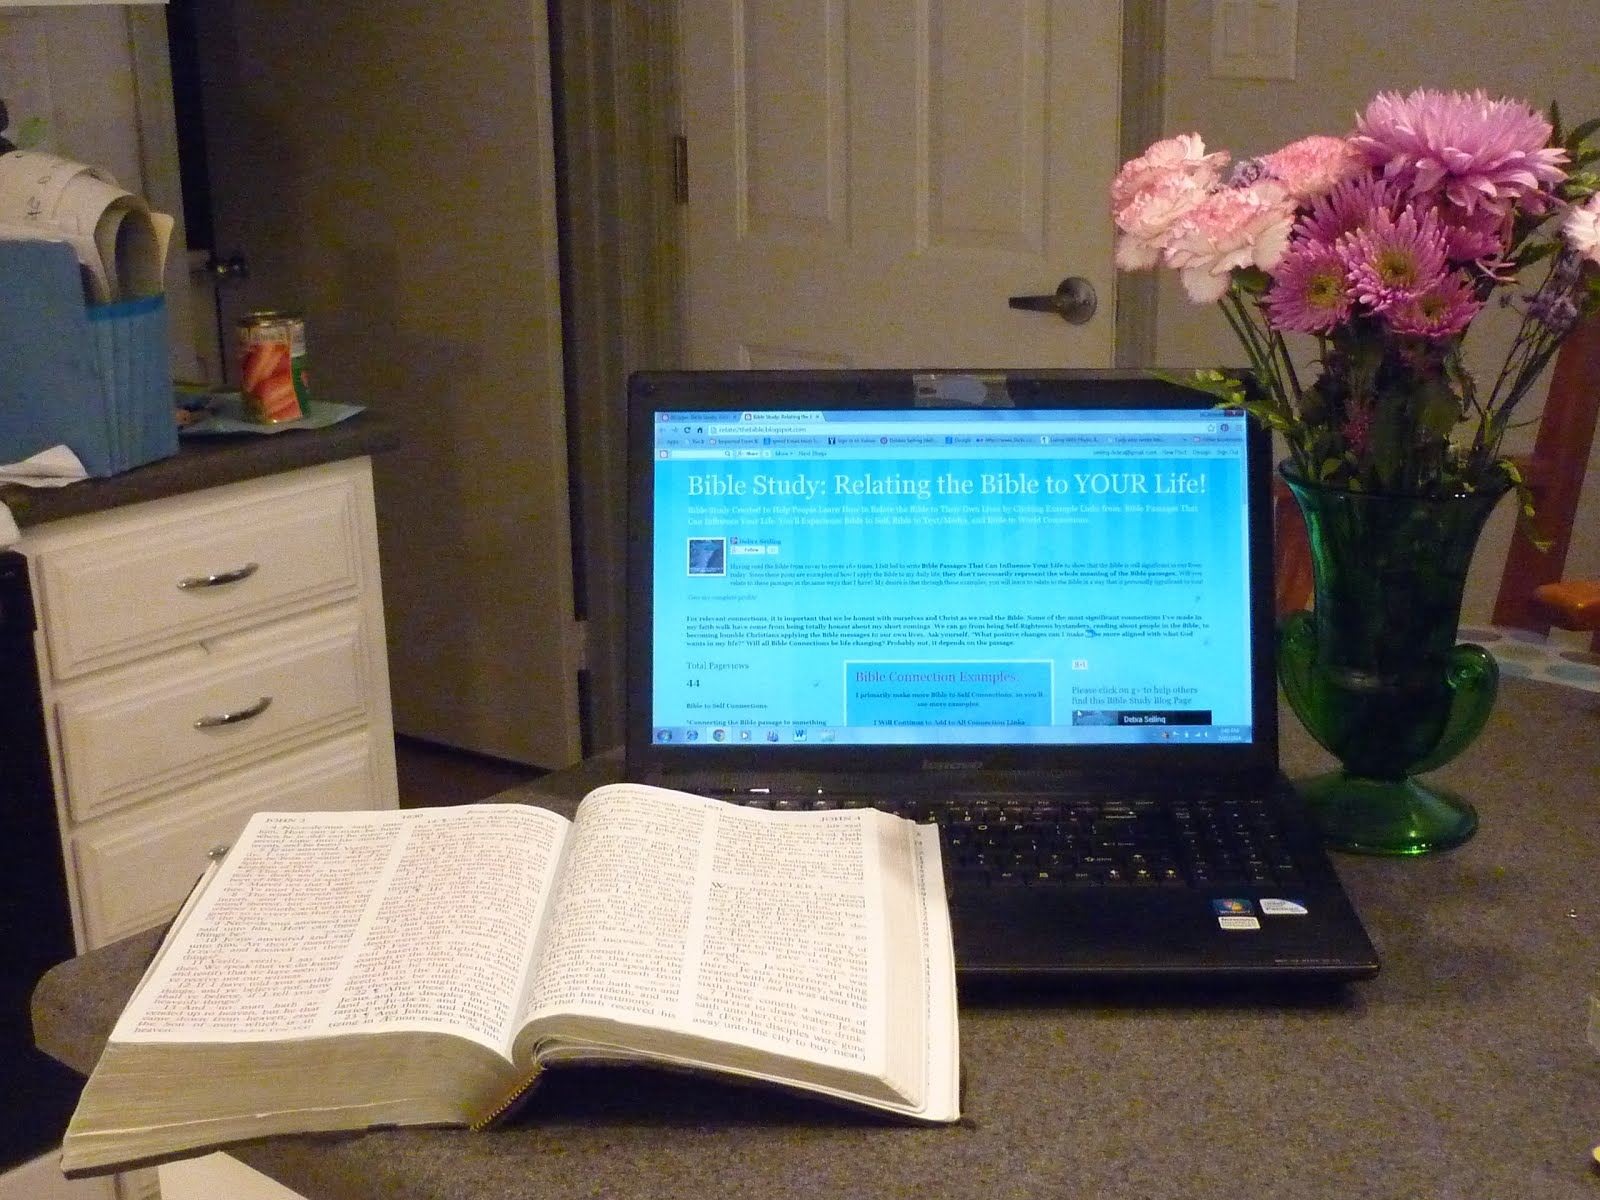 Bible Study: Relating the Bible to YOUR Life! Link